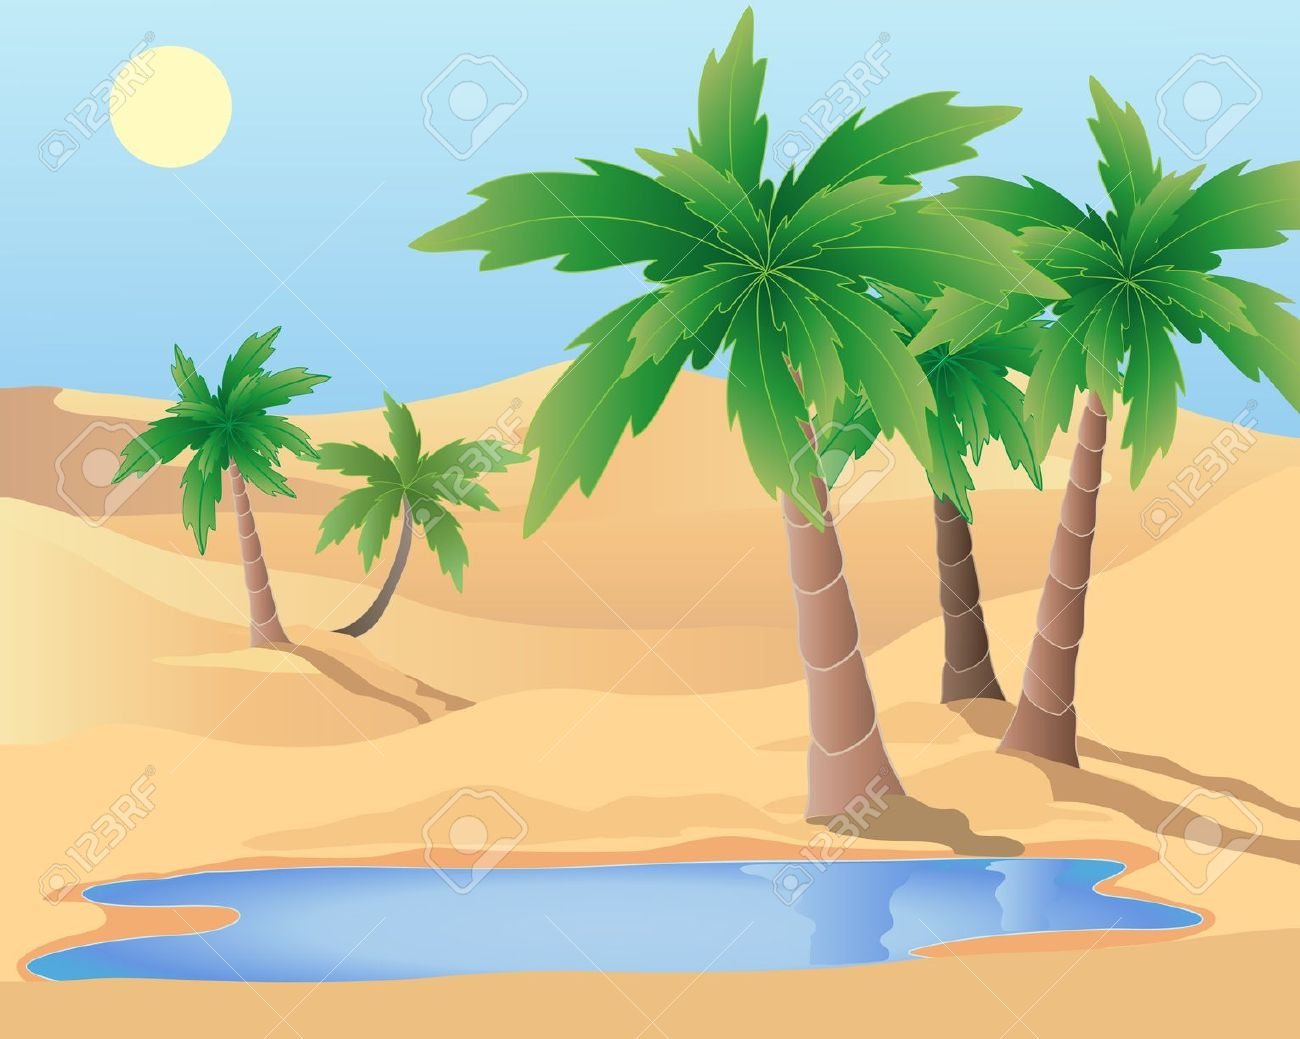 Arabian Desert clipart #4, Download drawings